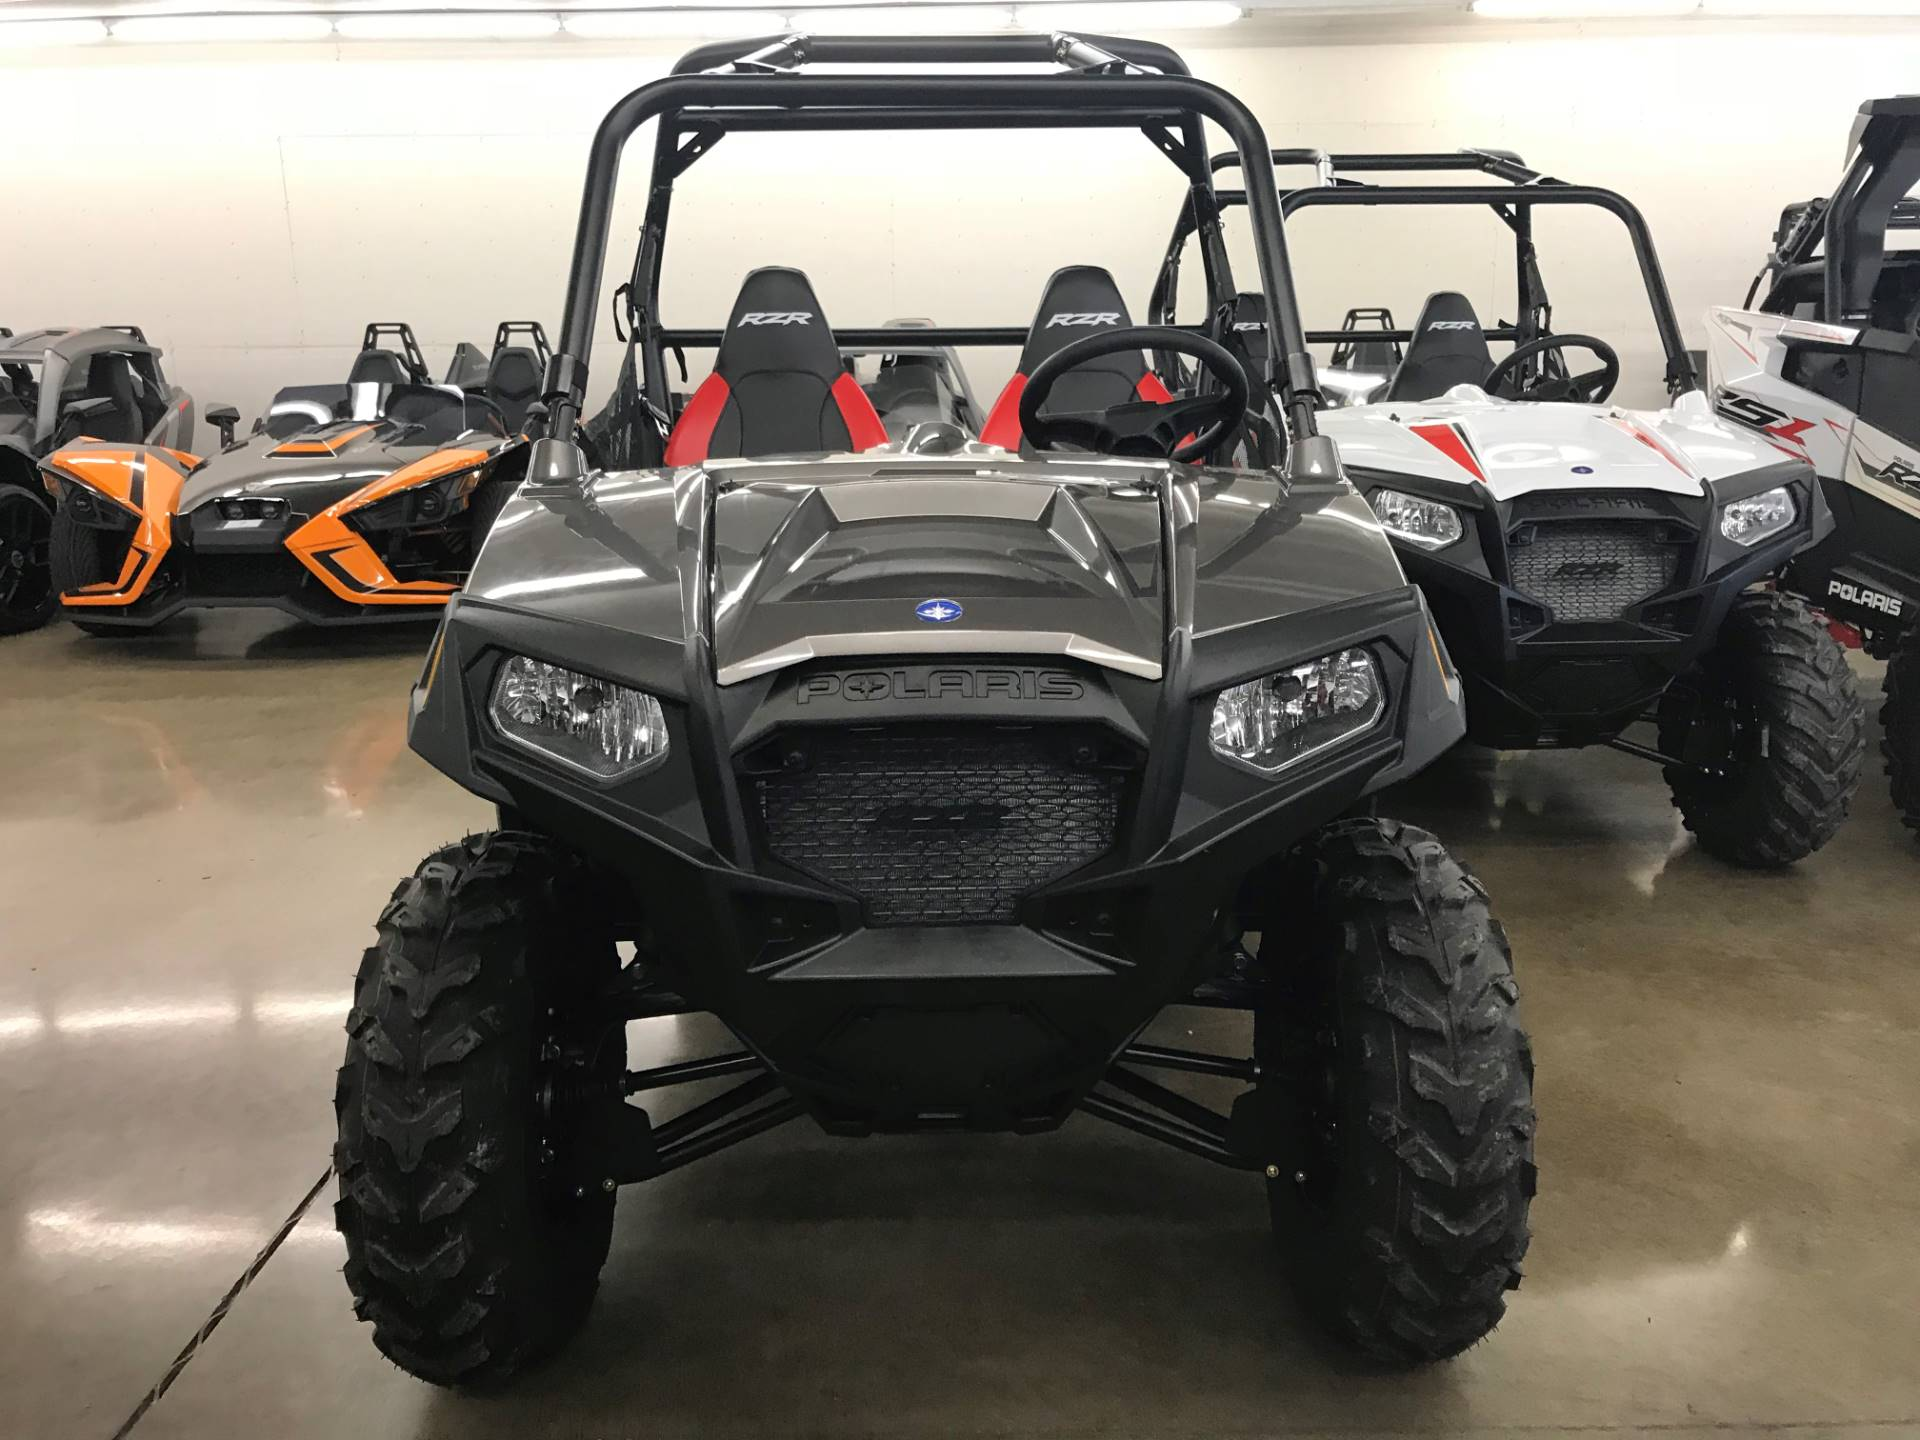 2019 Polaris RZR 570 EPS in Beaver Falls, Pennsylvania - Photo 2